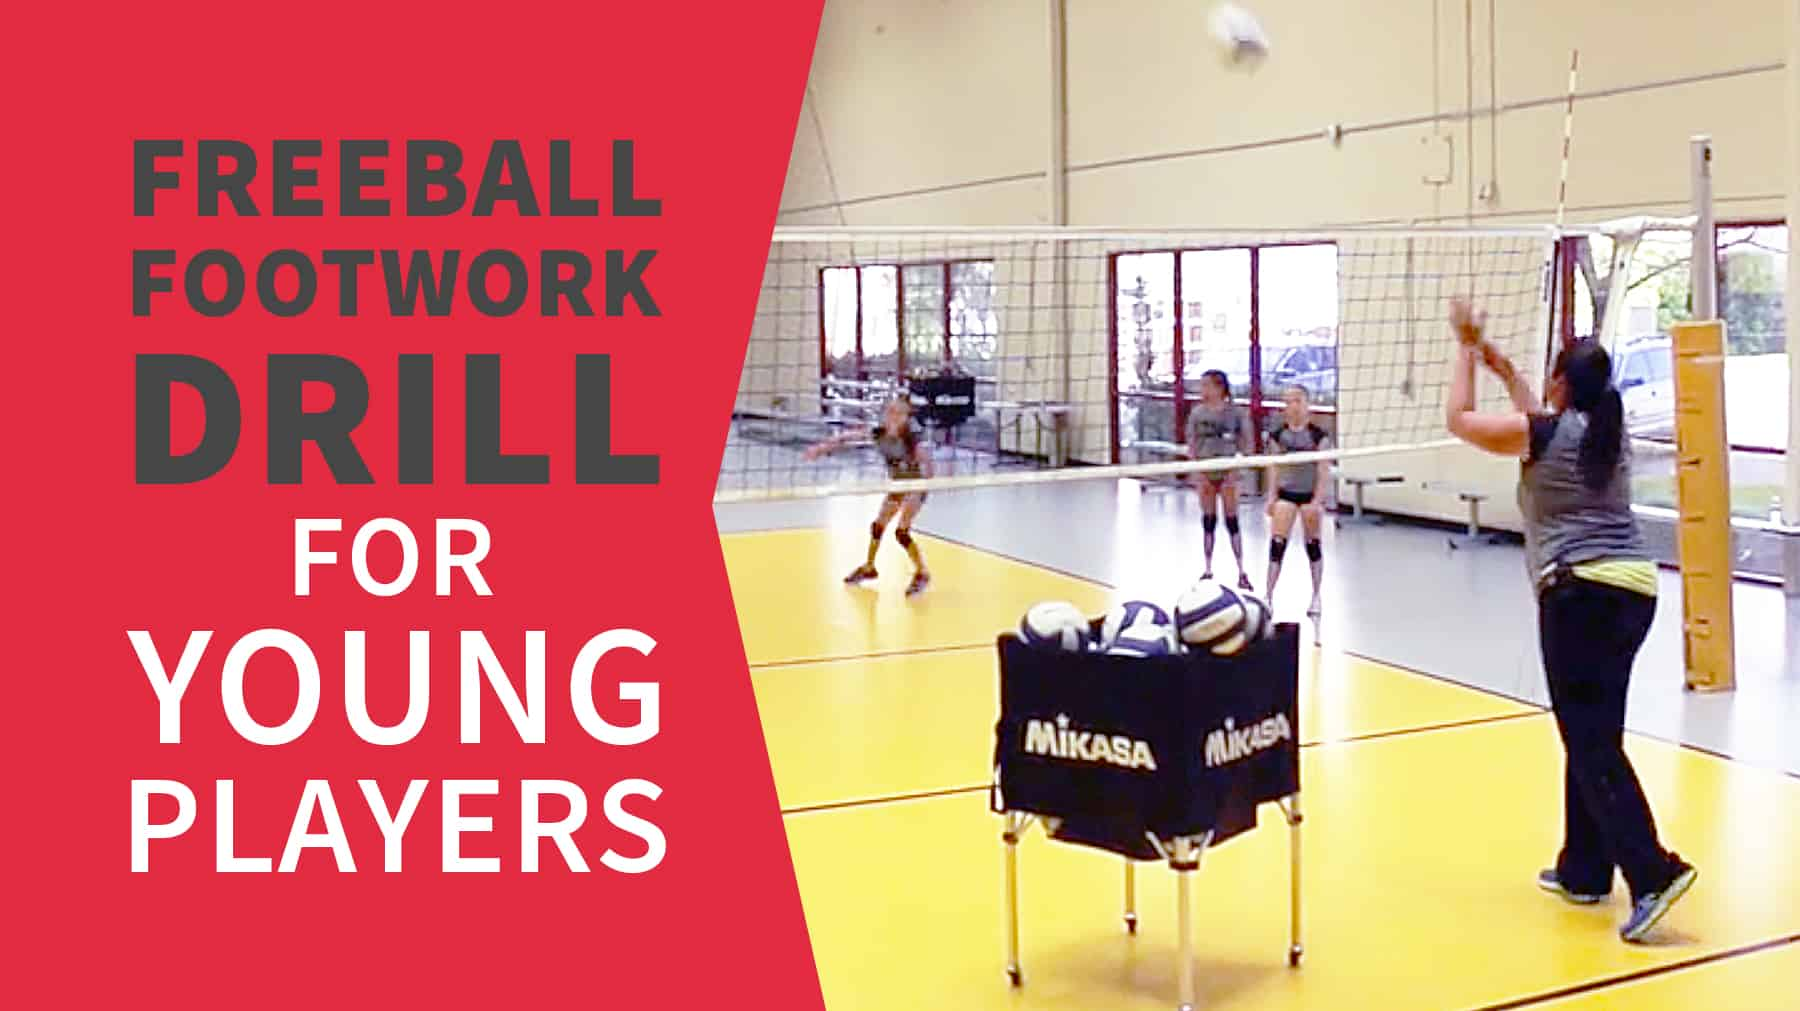 Freeball Footwork Drill For Young Players